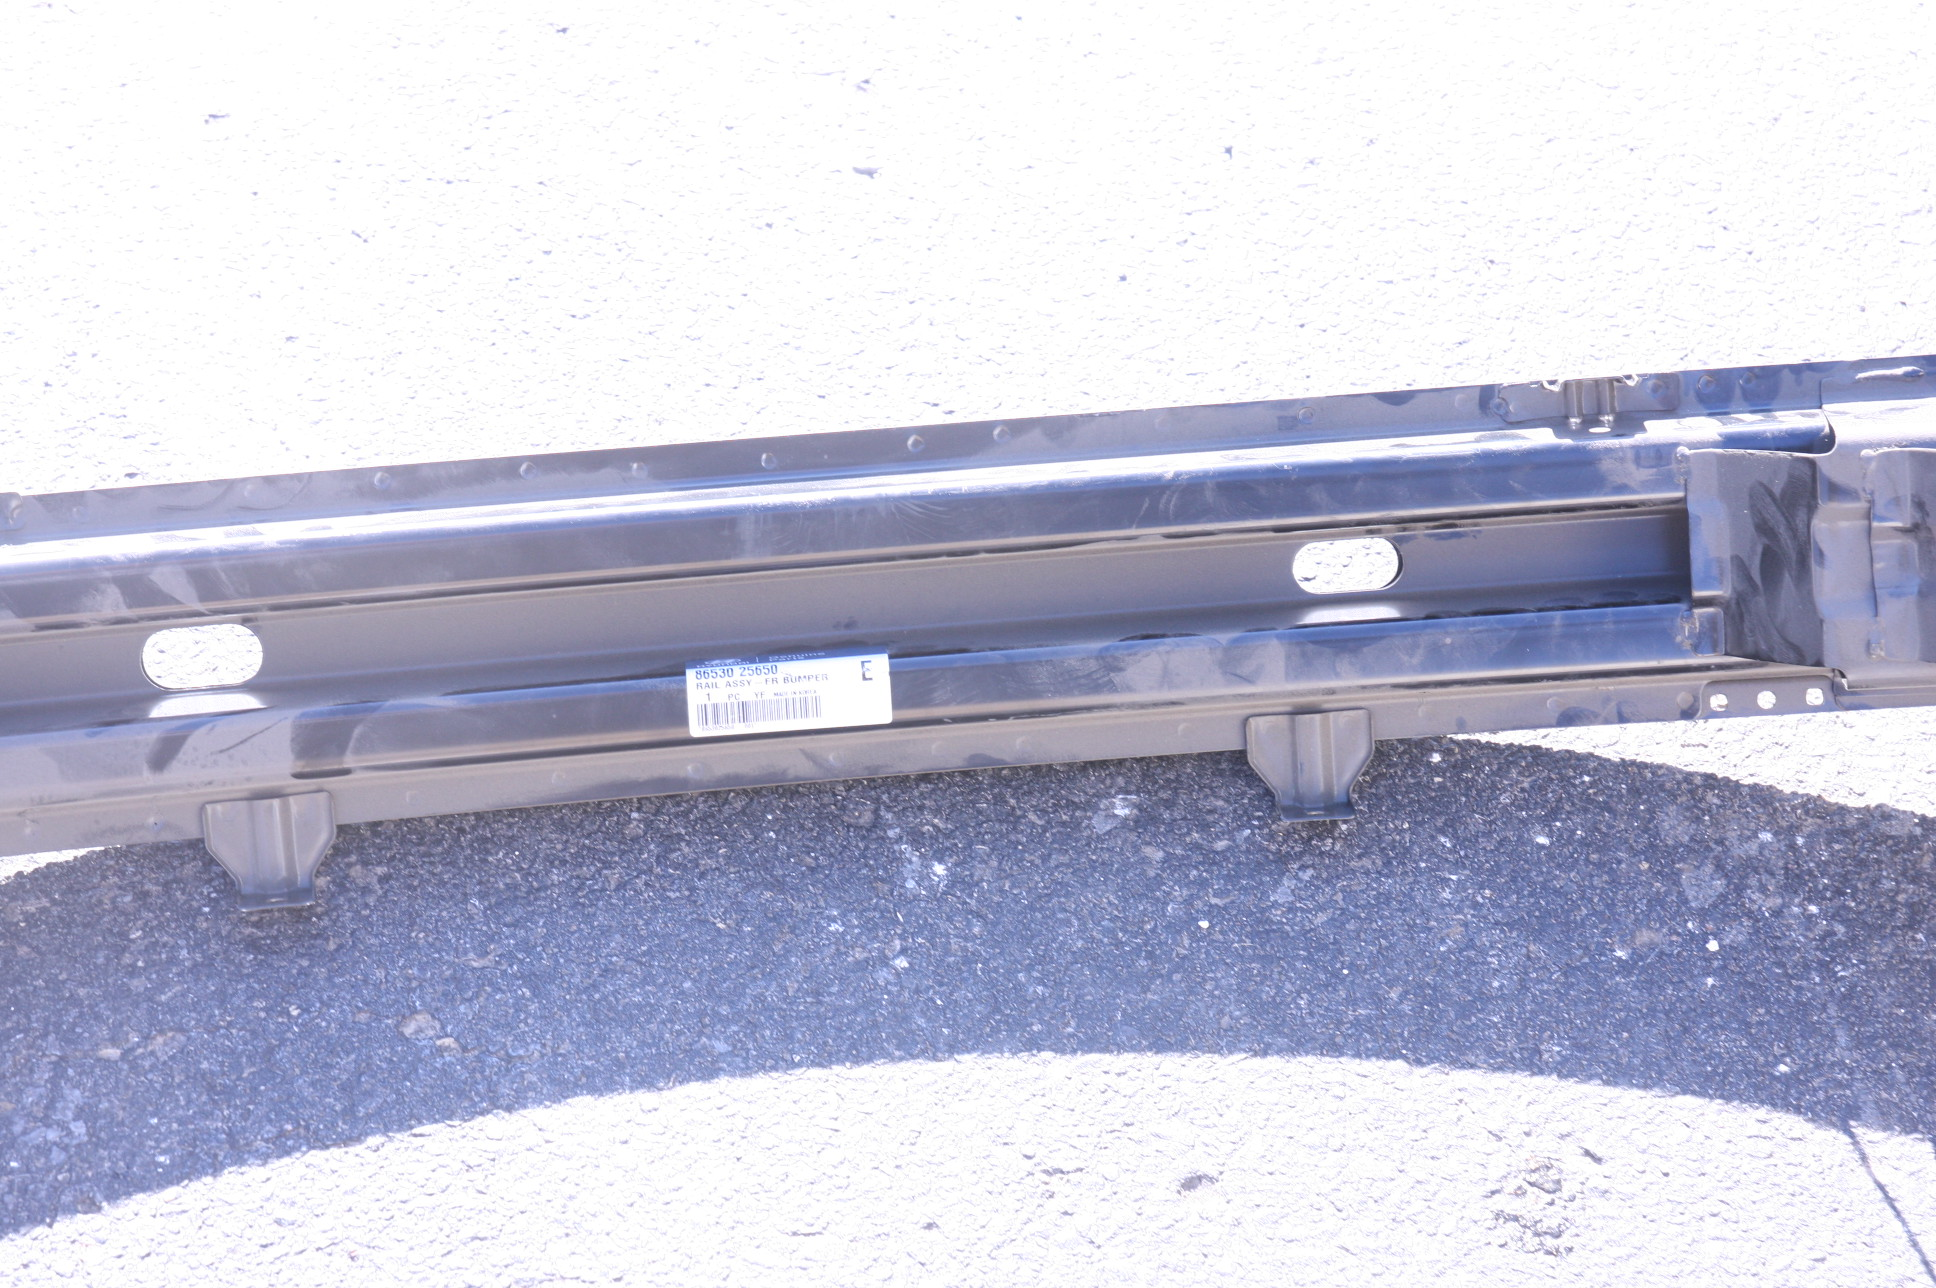 ~New OEM Hyundai 8653025650 Bumper Face Bar Reinforcement Free Shipping - image 4